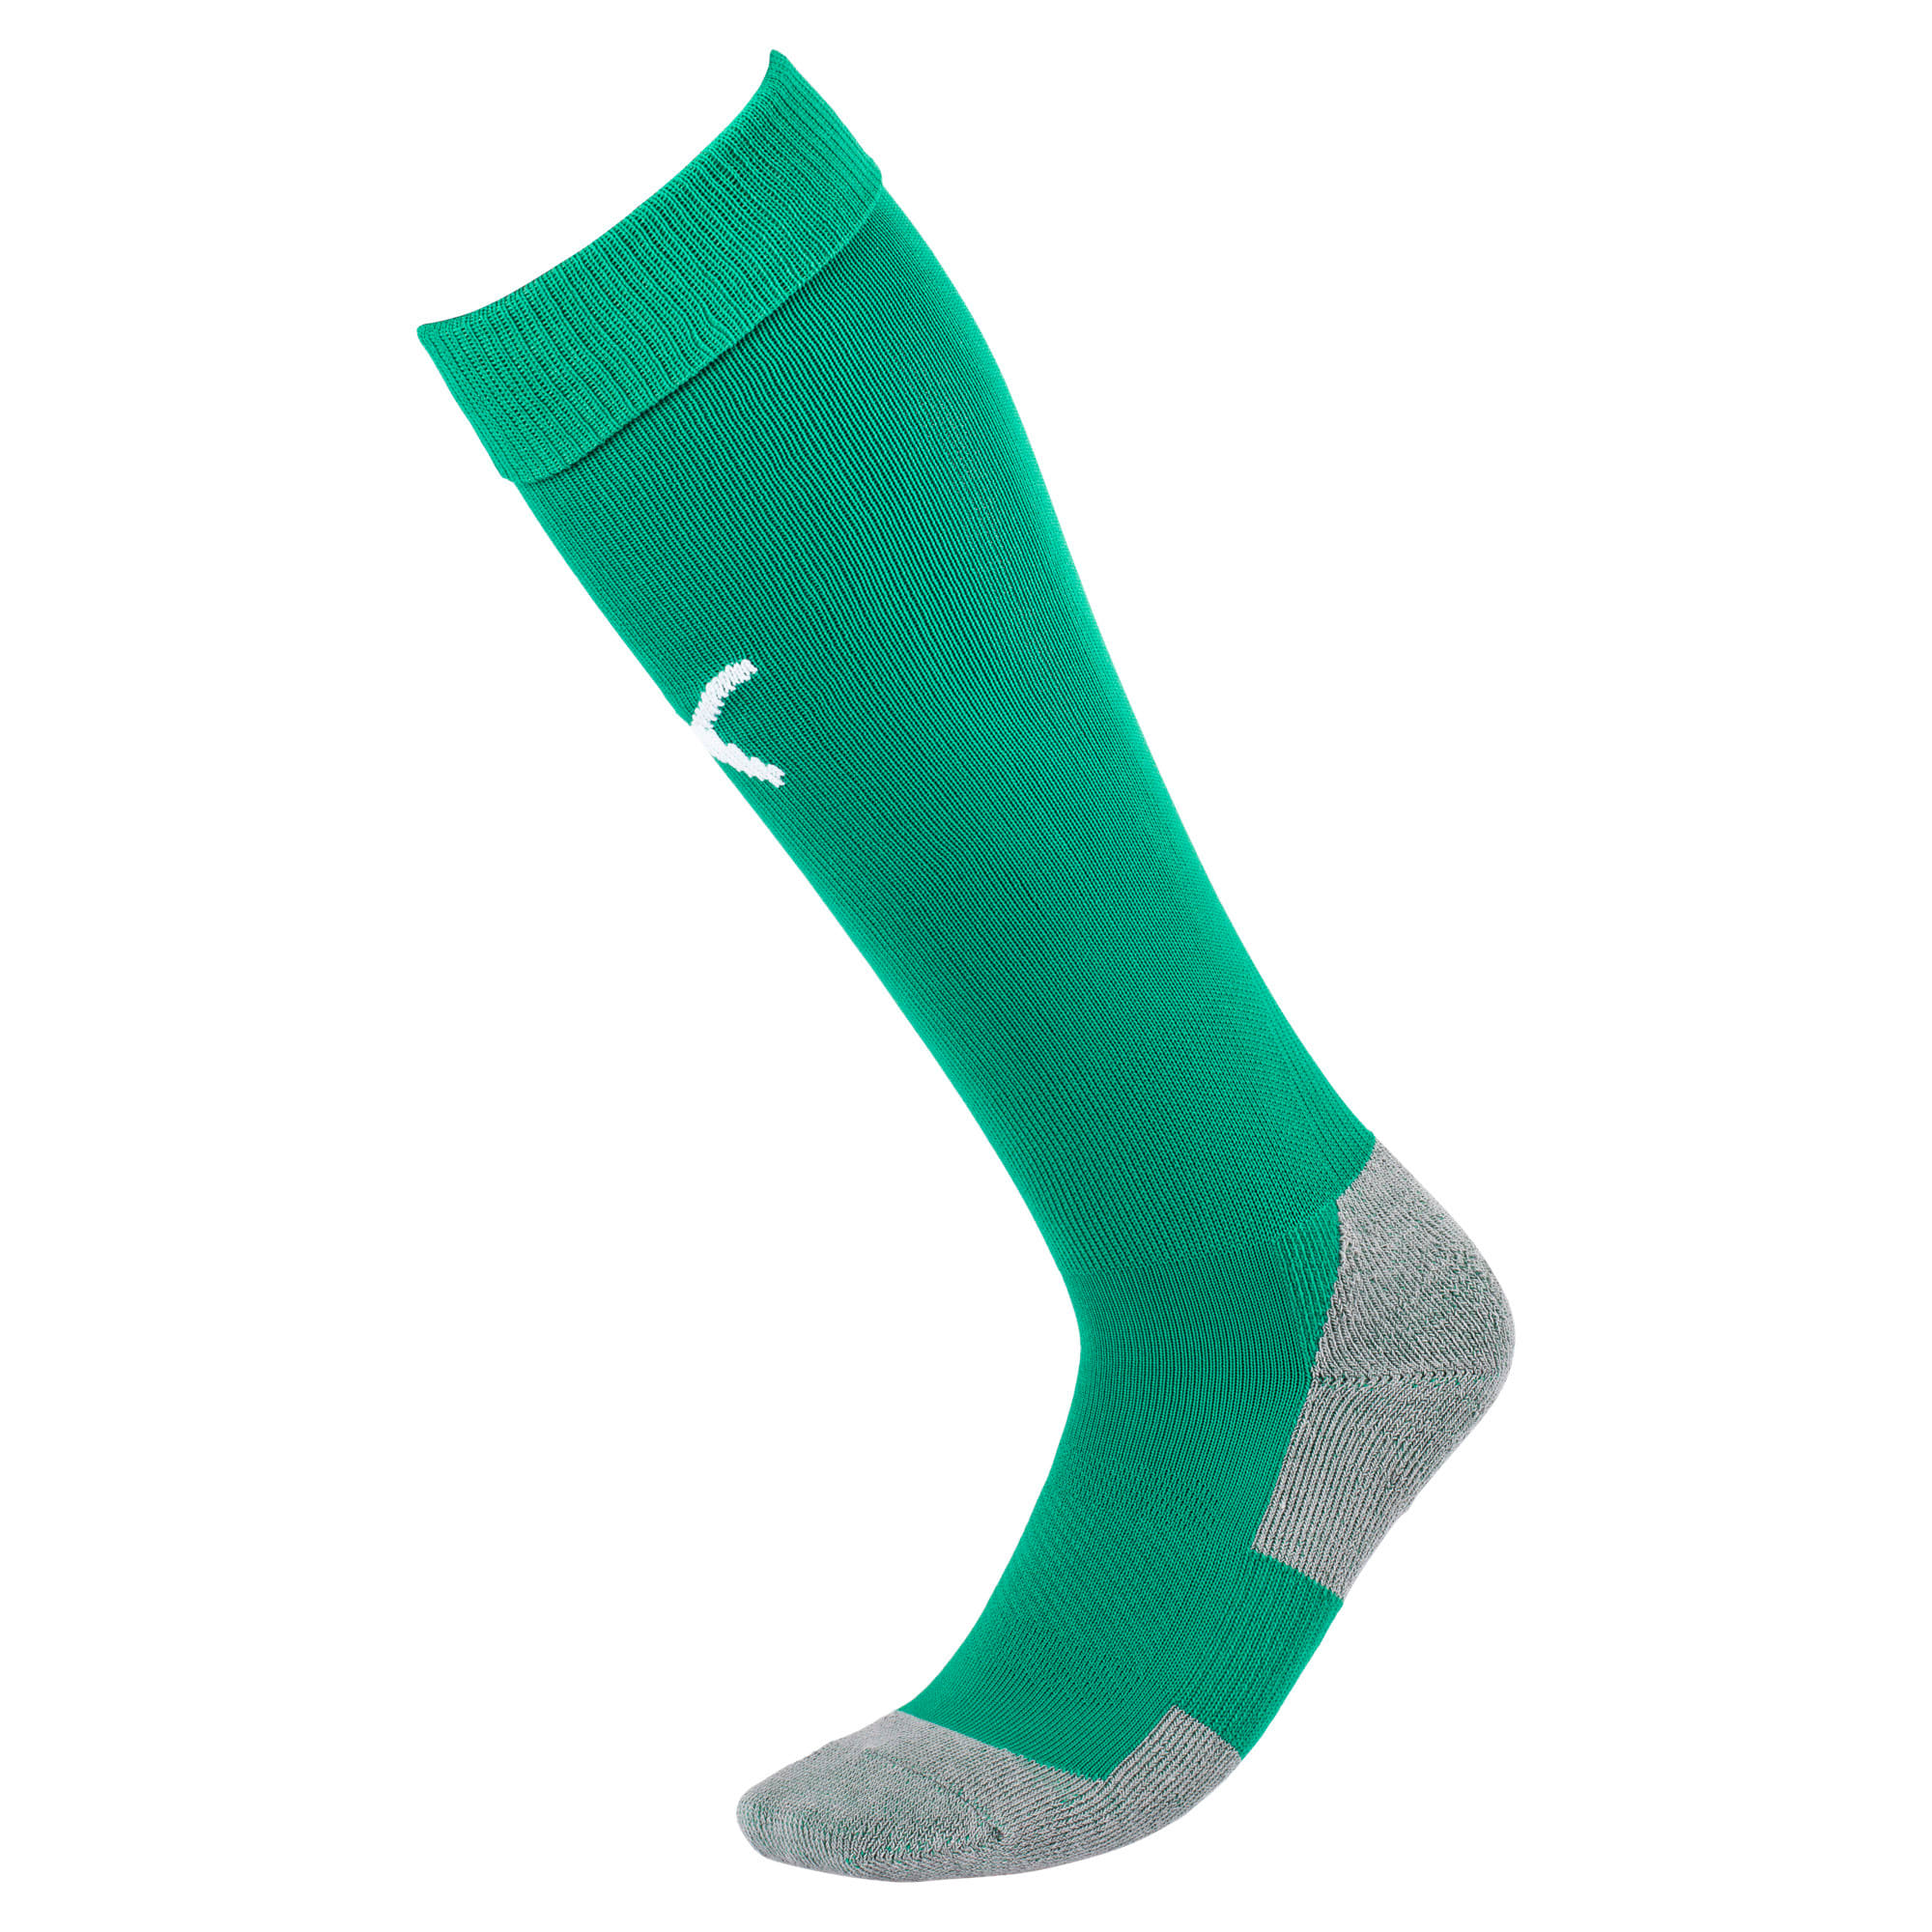 Thumbnail 1 of Football Men's LIGA Core Socks, Bright Green-Puma White, medium